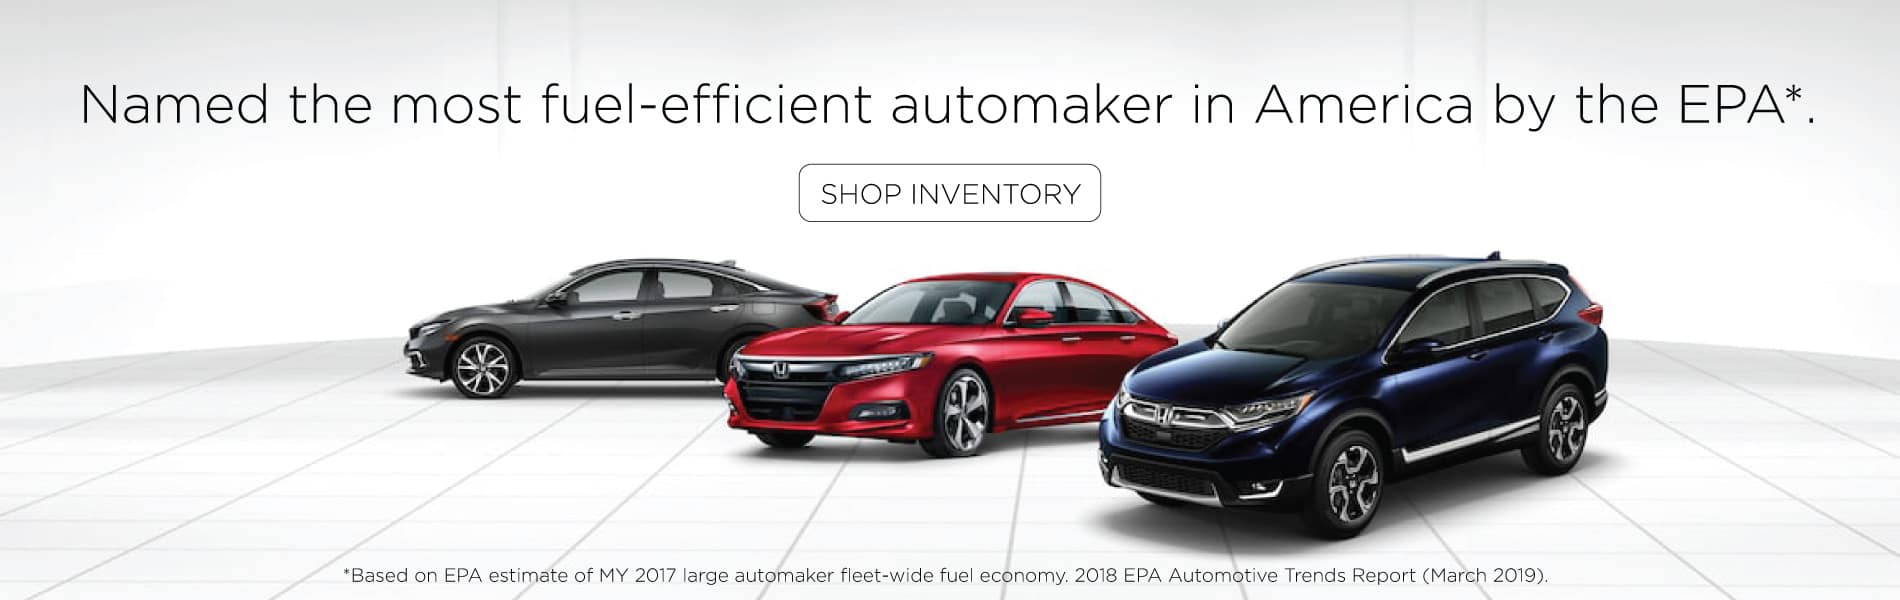 honda named the most fuel-efficient automaker in America by the EPA